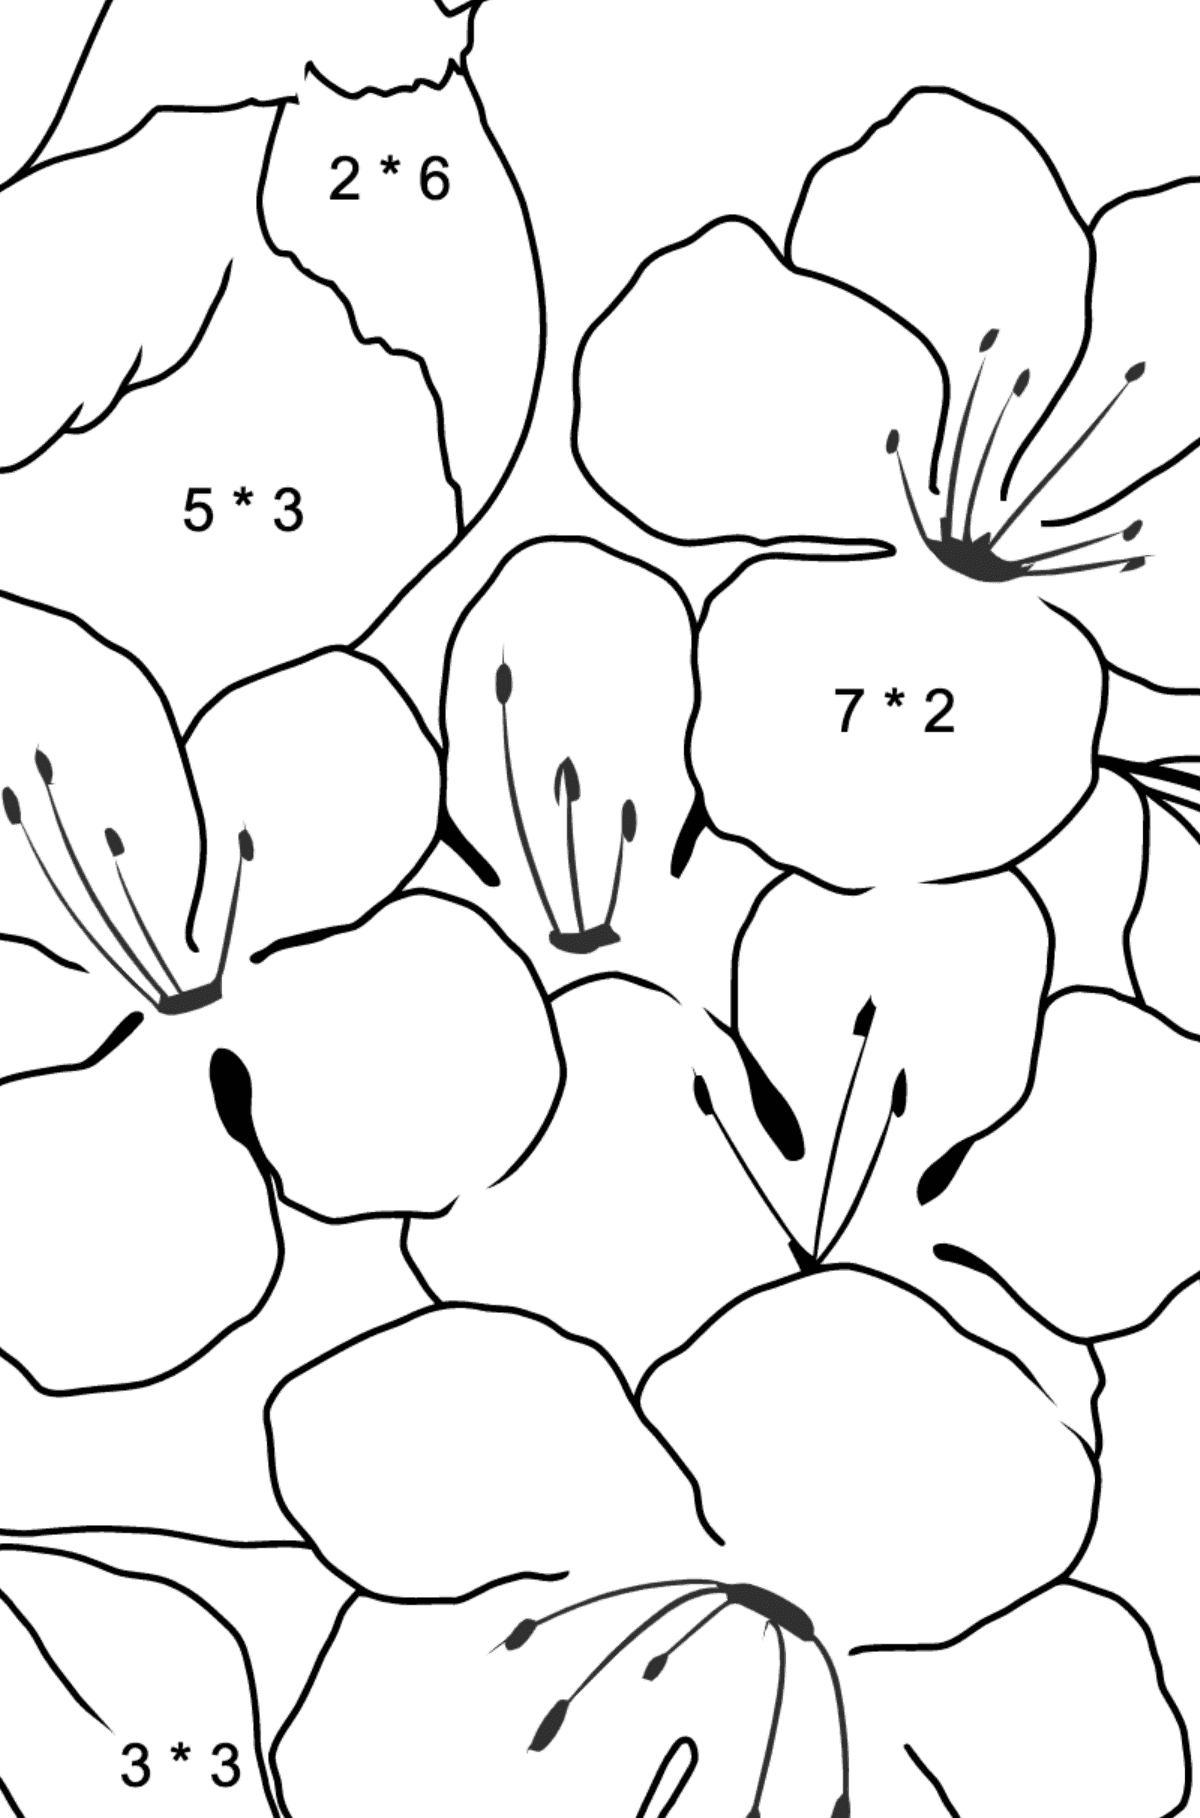 Summer Coloring Page - A Bird is Chirping on a Branch with Flowers for Kids  - Color by Number Multiplication